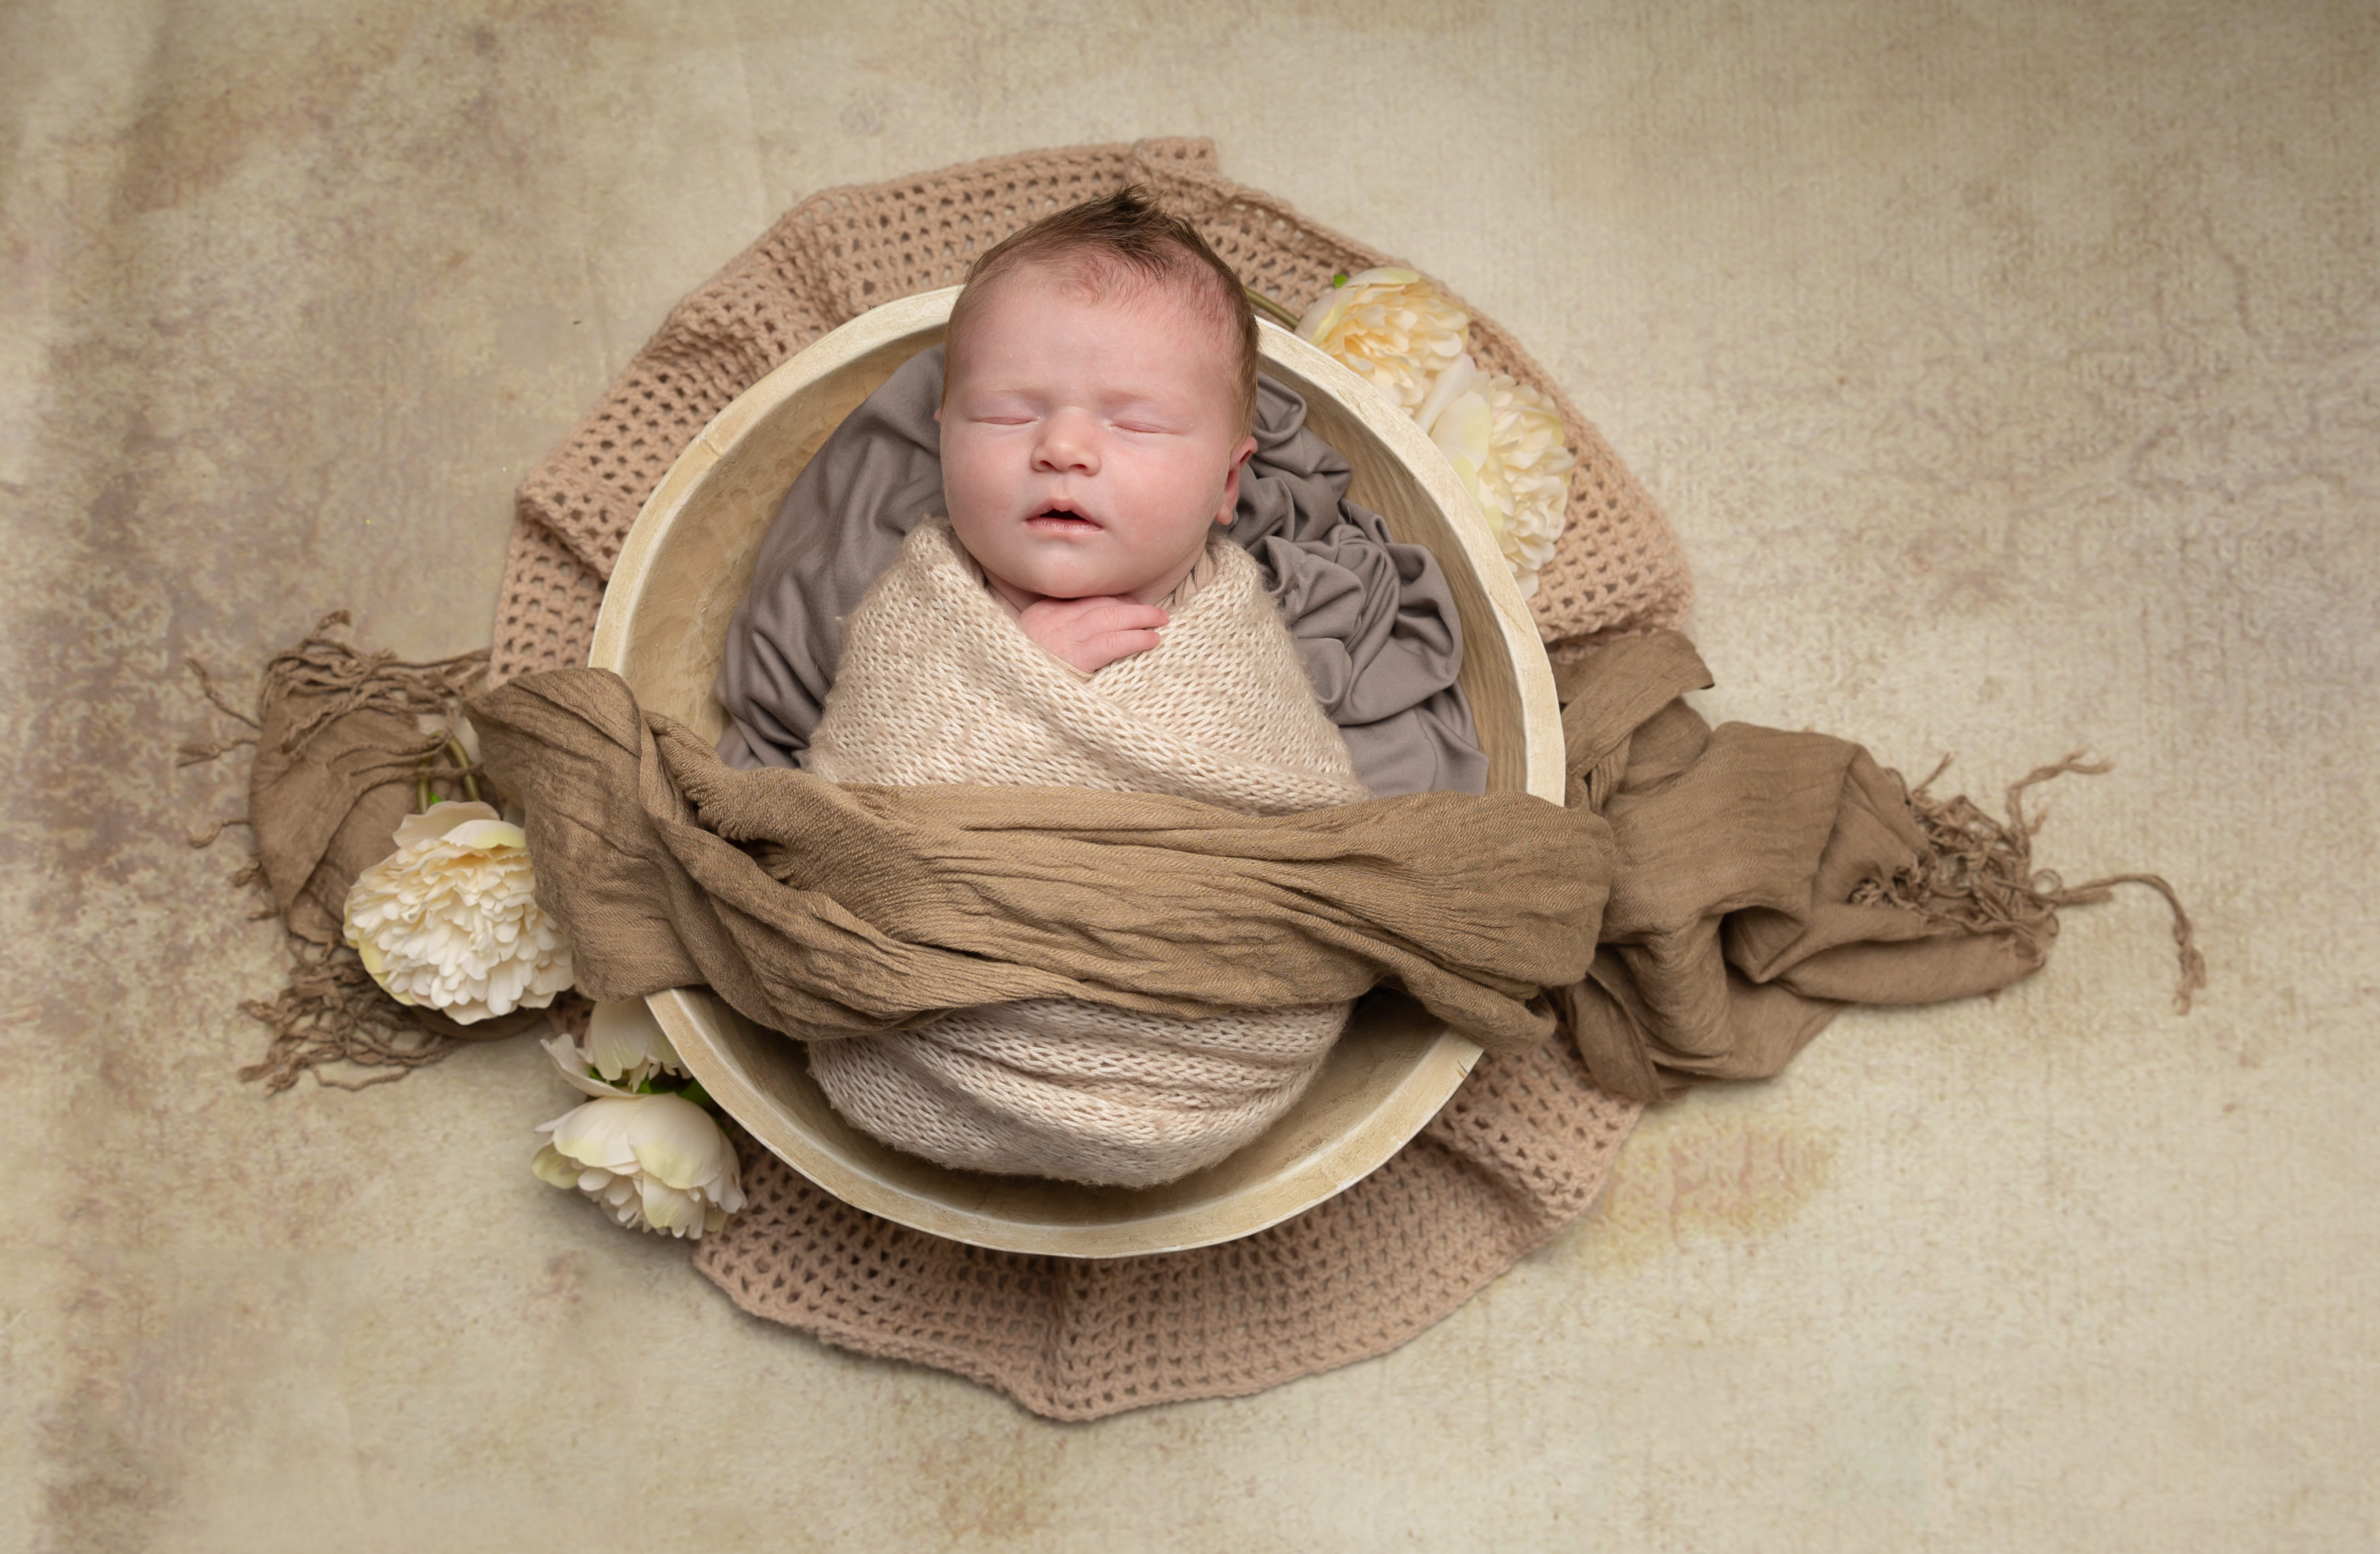 Baby in Cream wrap in cream wooden bowl